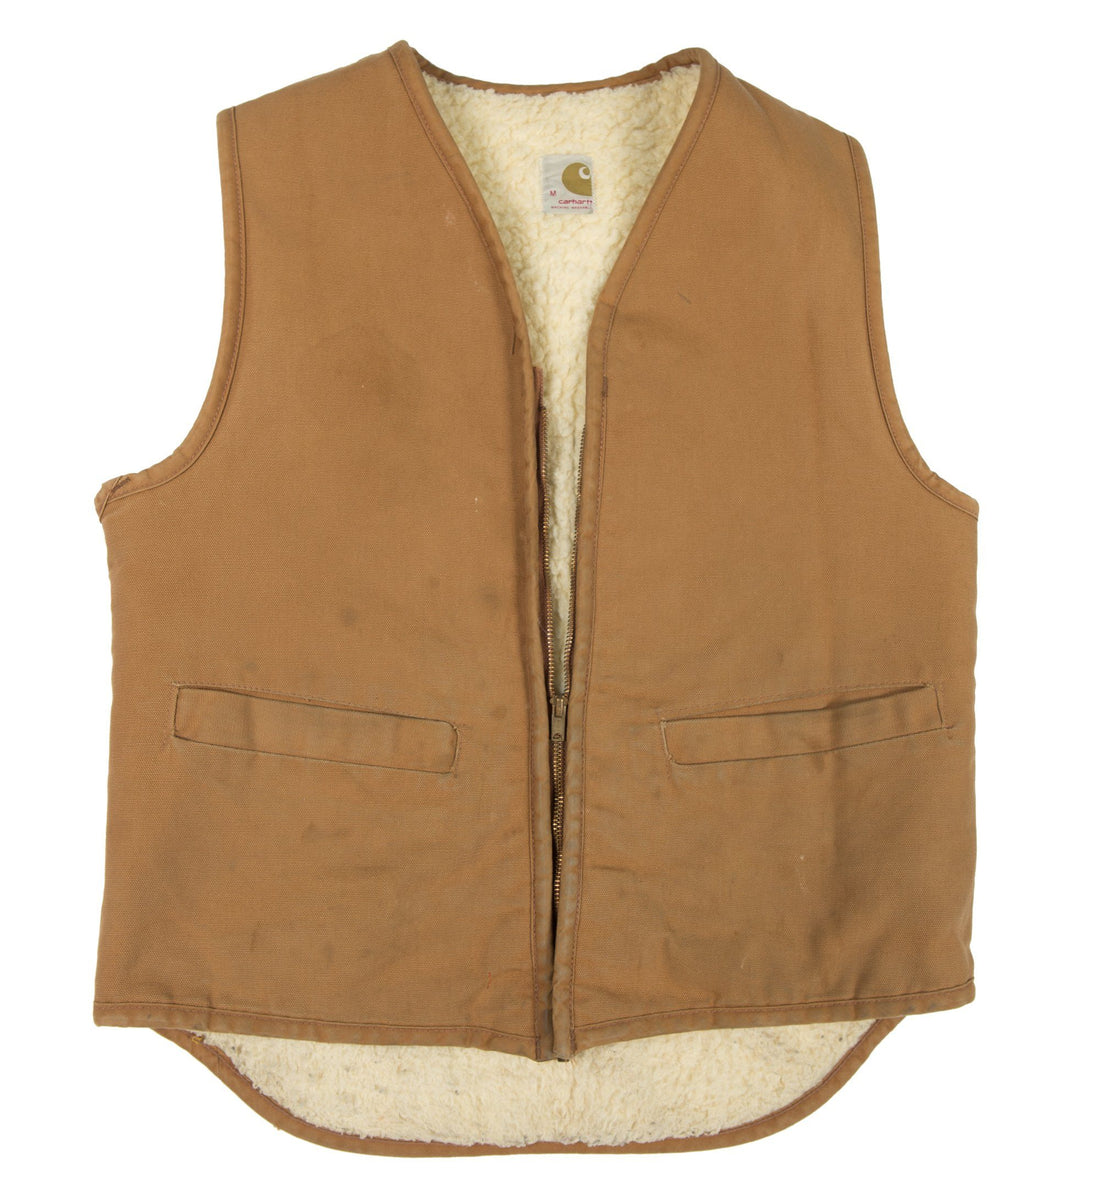 Vintage Tan Carhartt Vest with sherling lining - Vintage - Iron and Resin